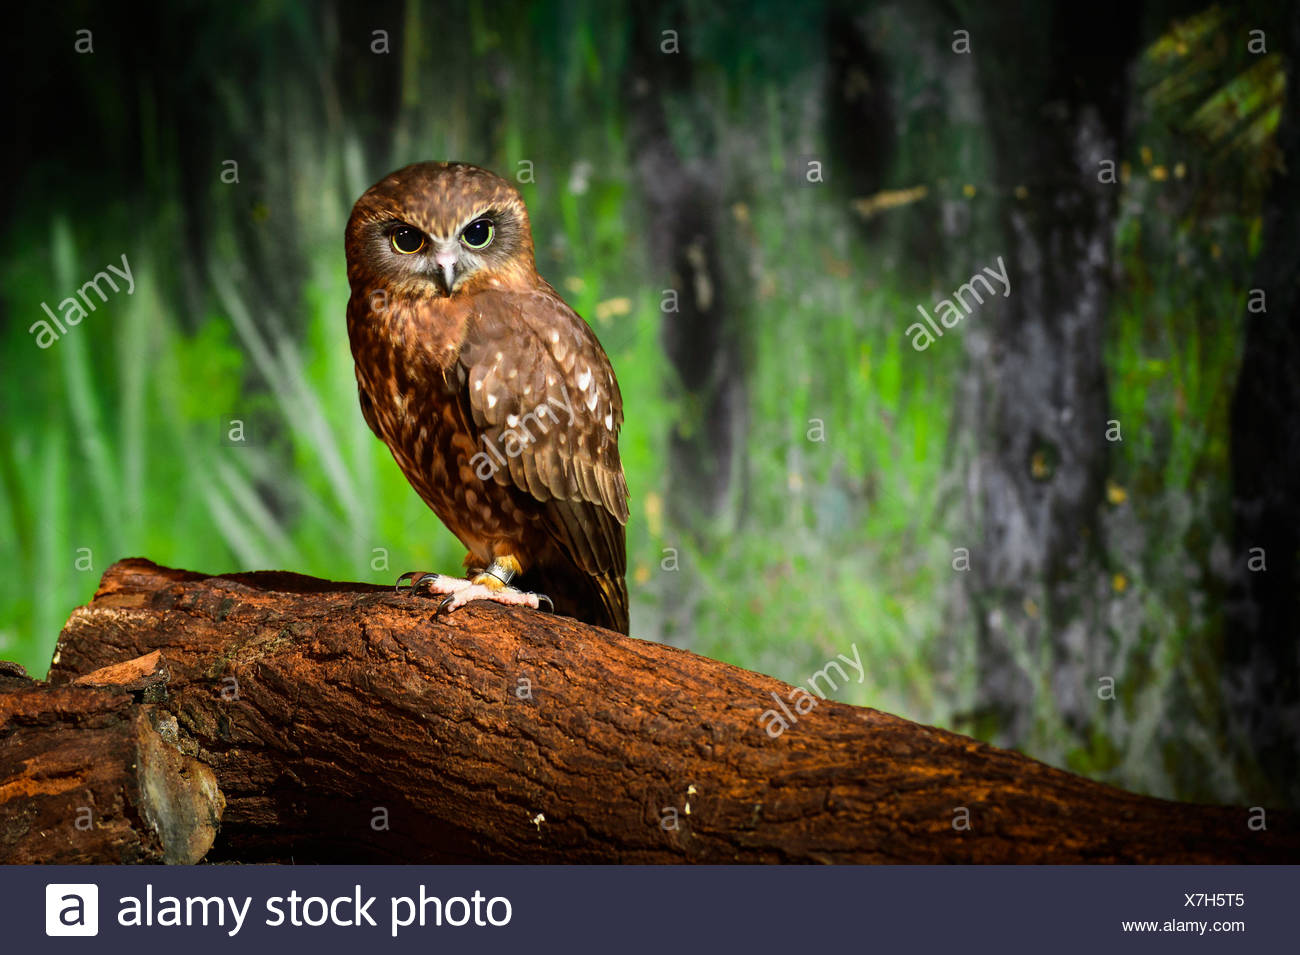 Portrait of brown owl, Thailand - Stock Image